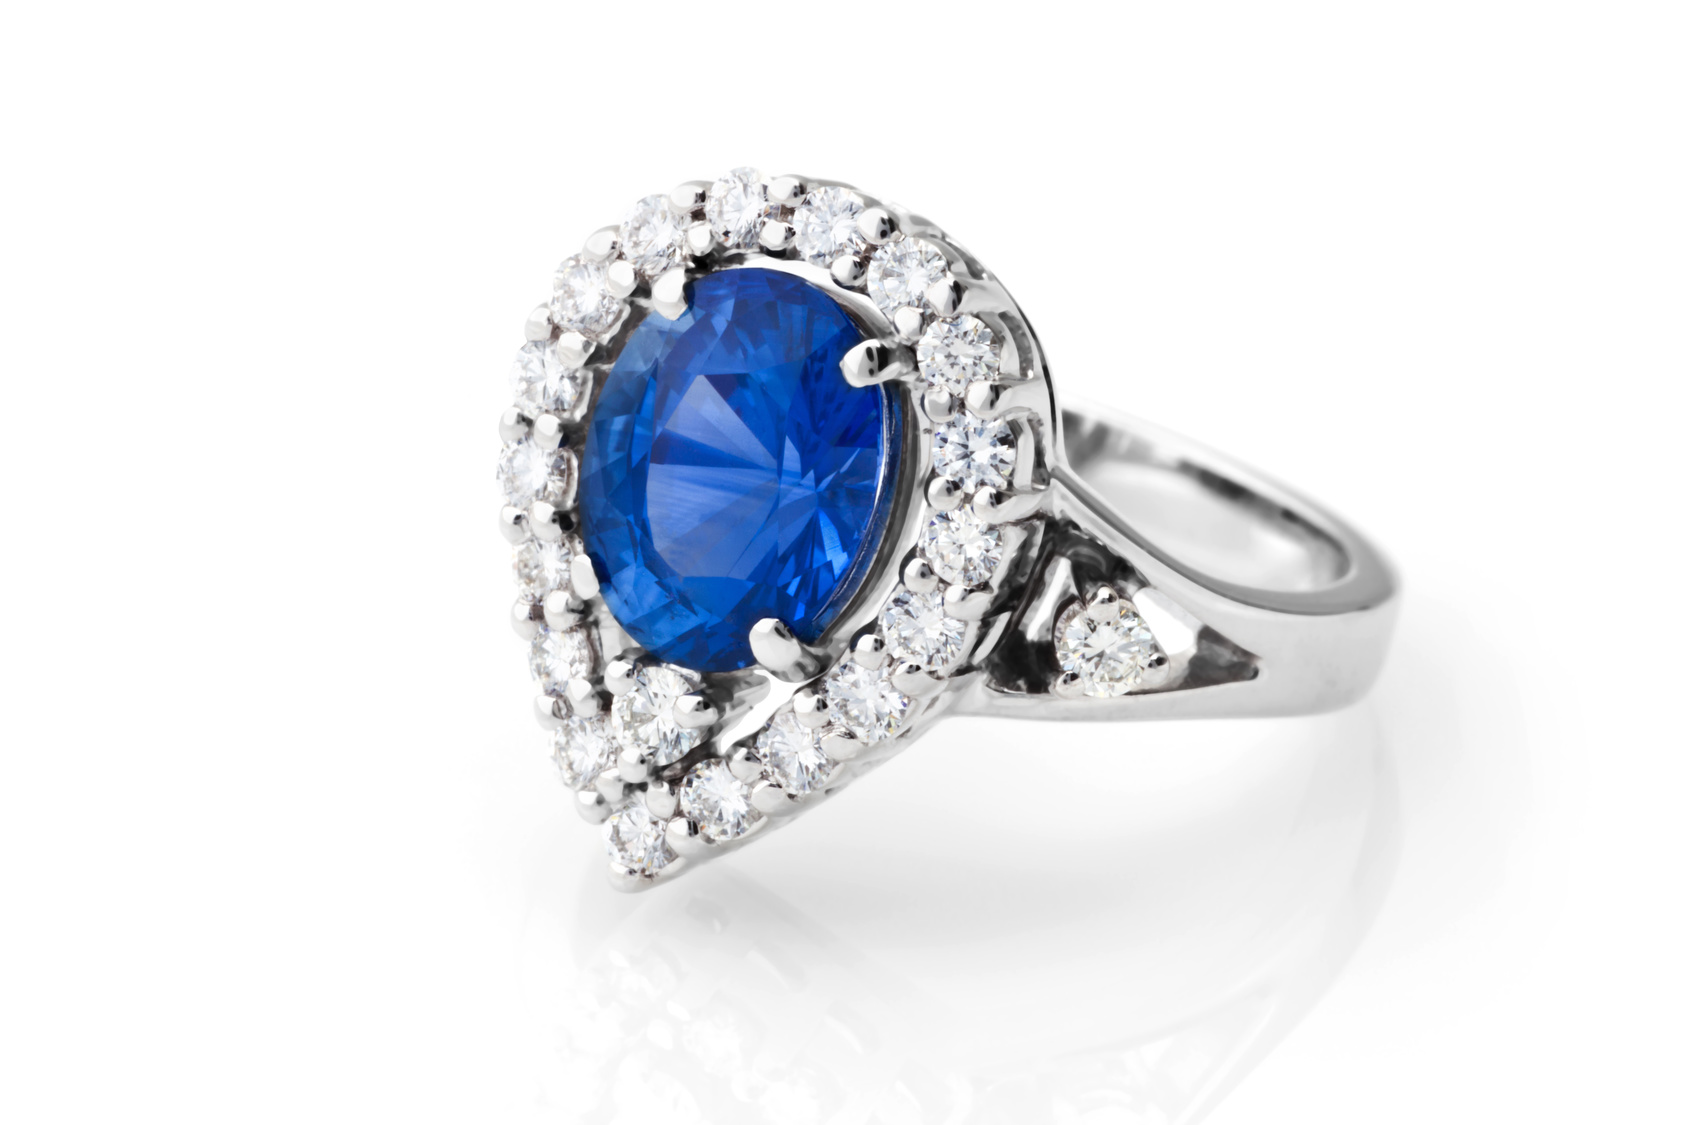 A ring with sapphire and diamonds.